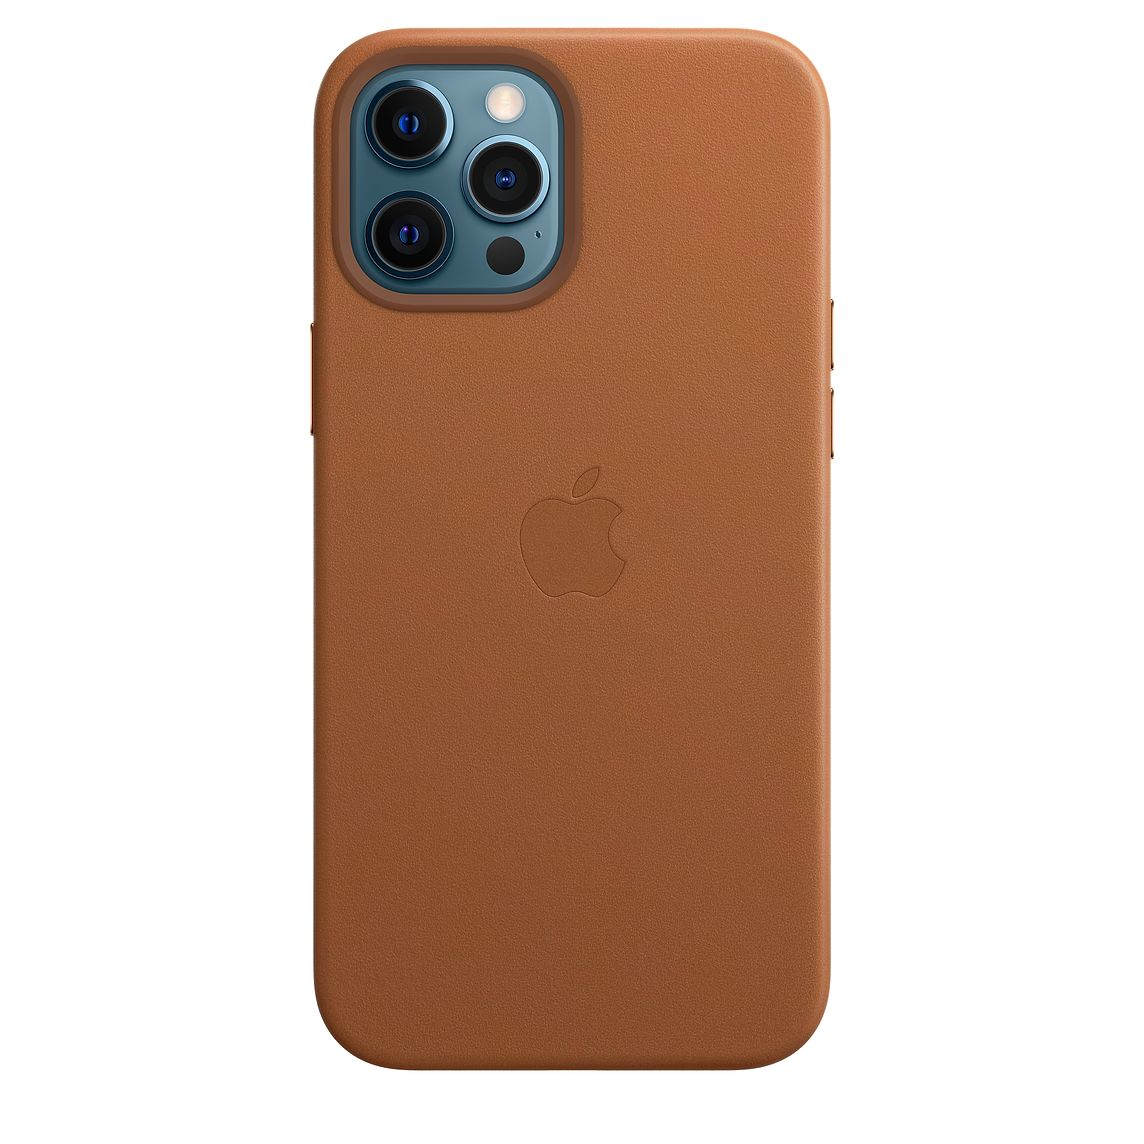 Apple iPhone 12 Pro Max Leather Case with MagSafe Saddle Brown